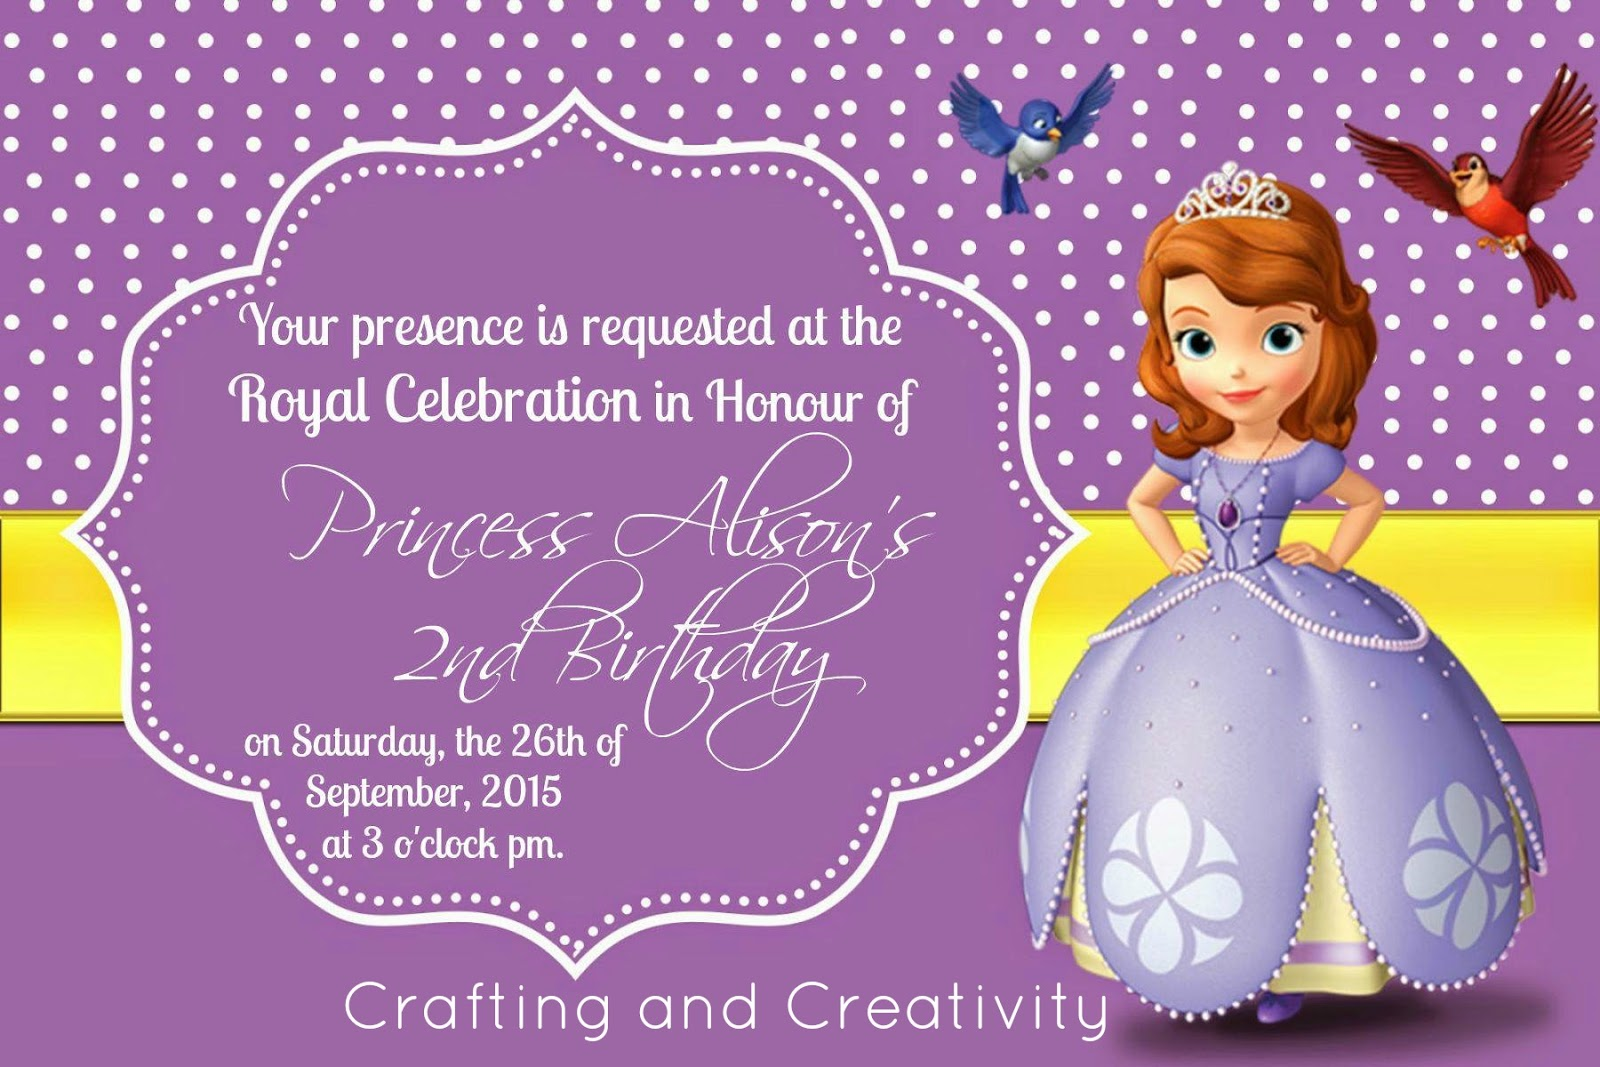 First Bday Invites is nice invitations design